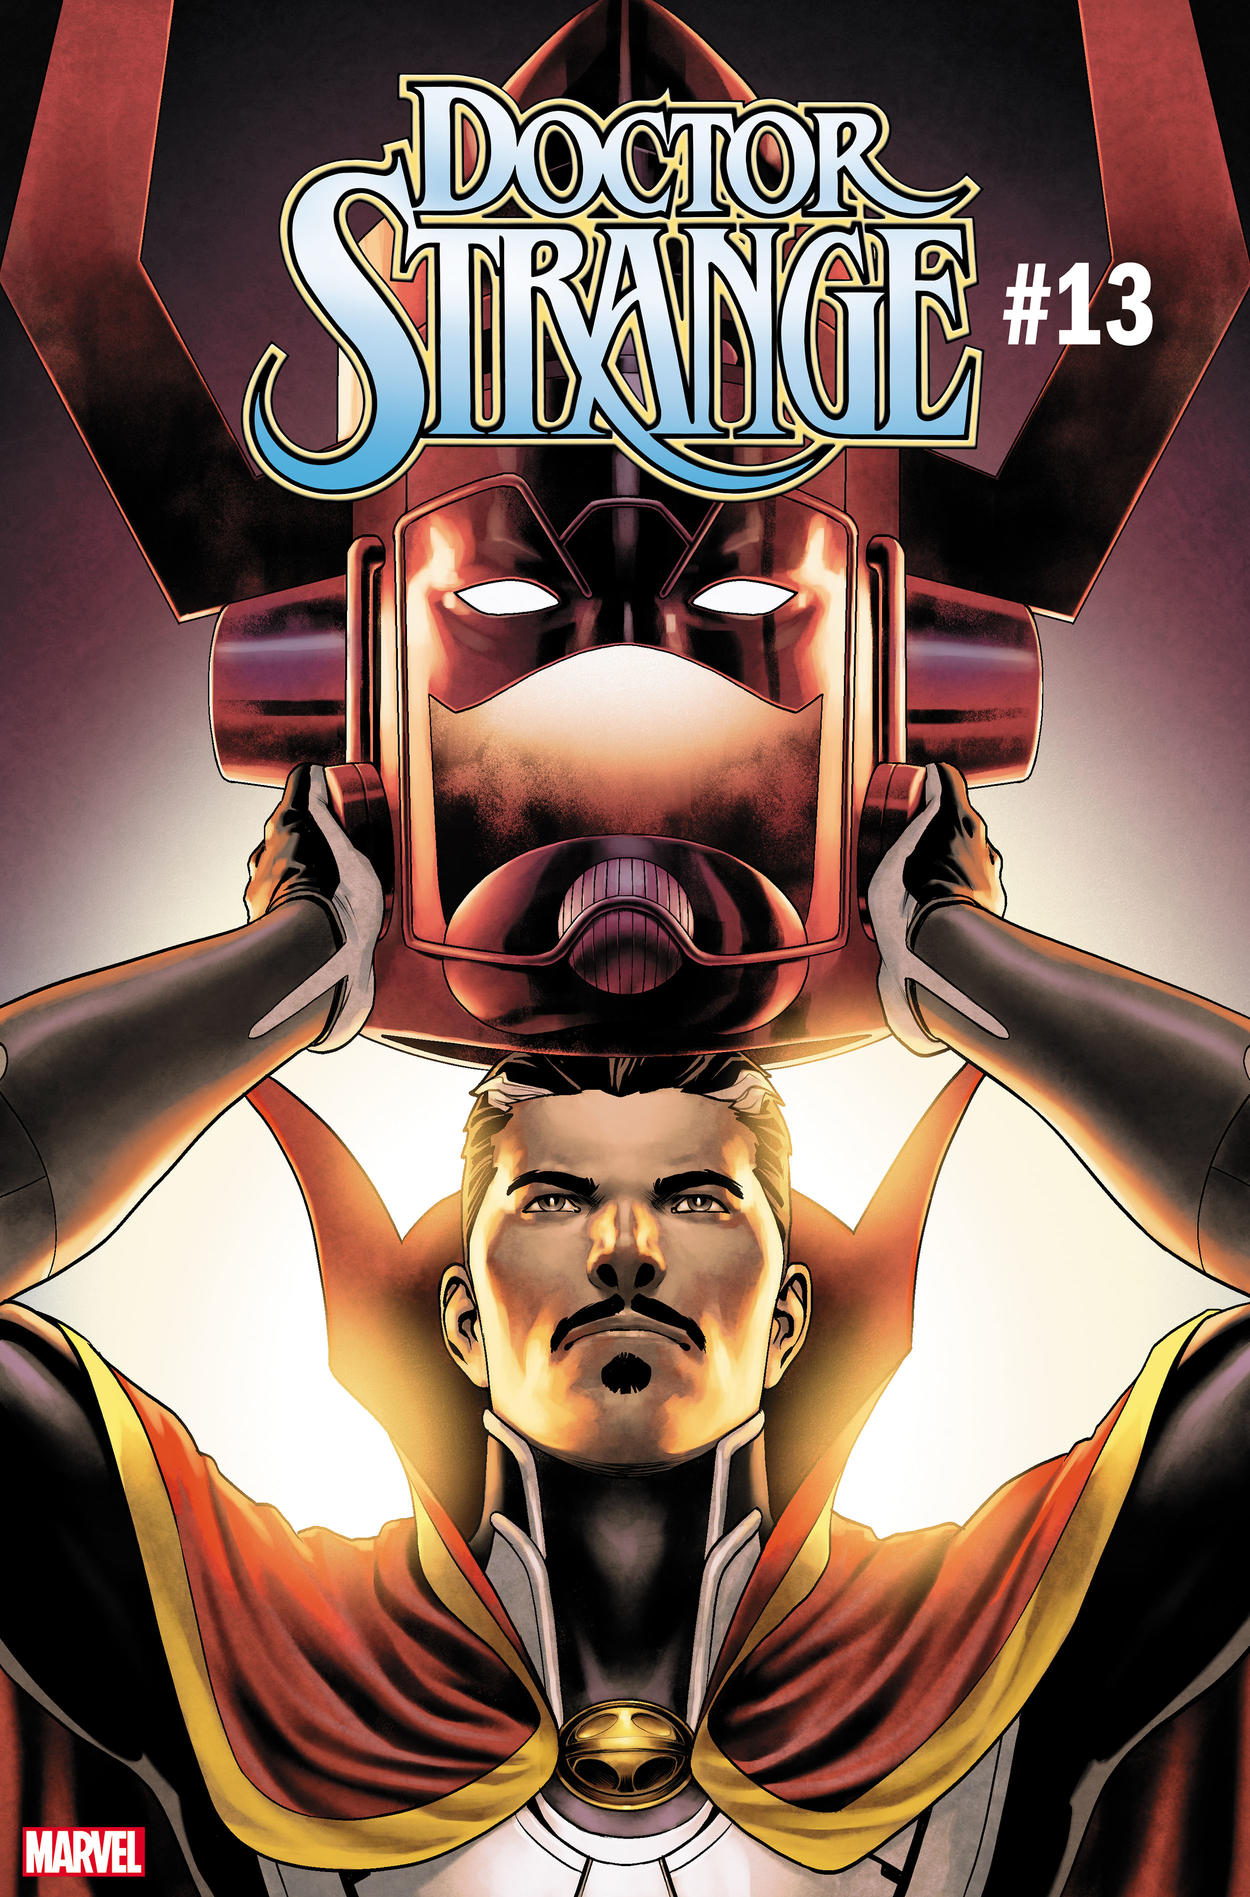 Cover of Doctor Strange #13